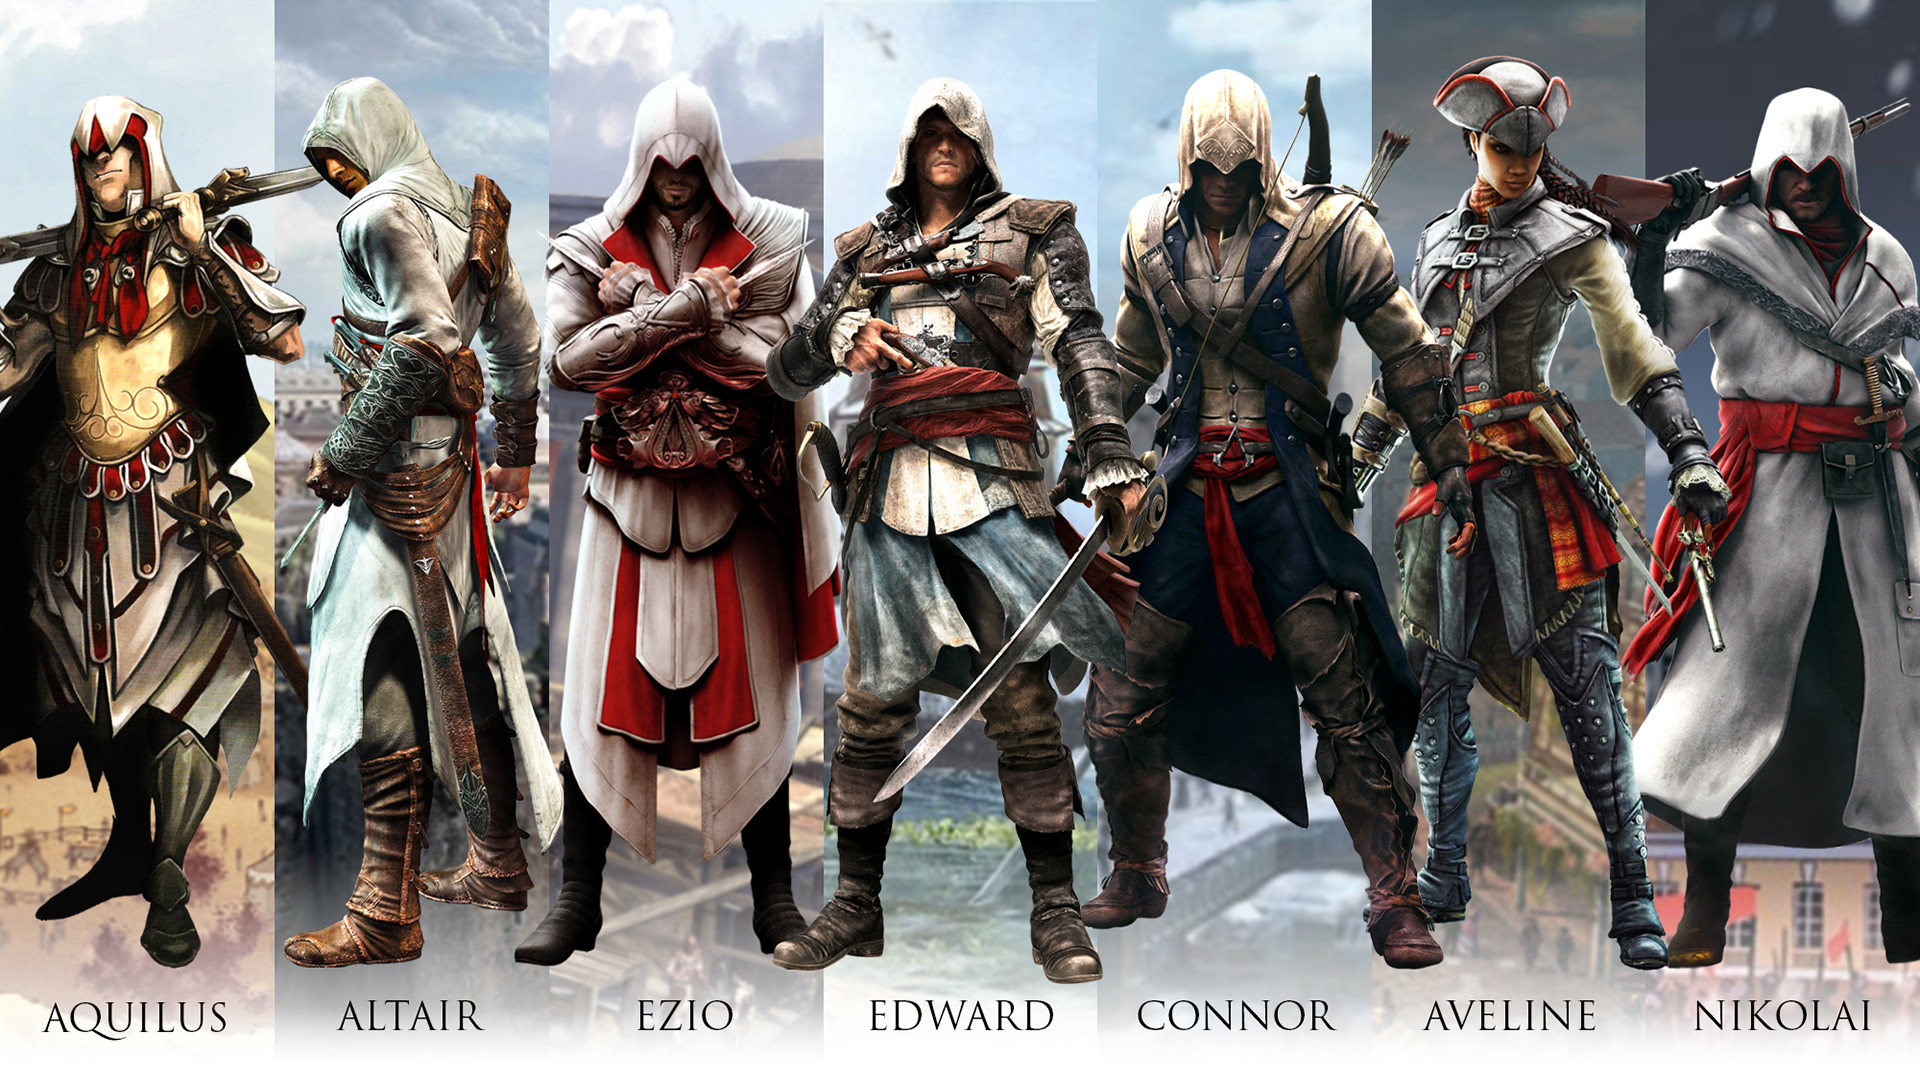 1920x1080 ... All hero in Assassin's Creed series by santap555